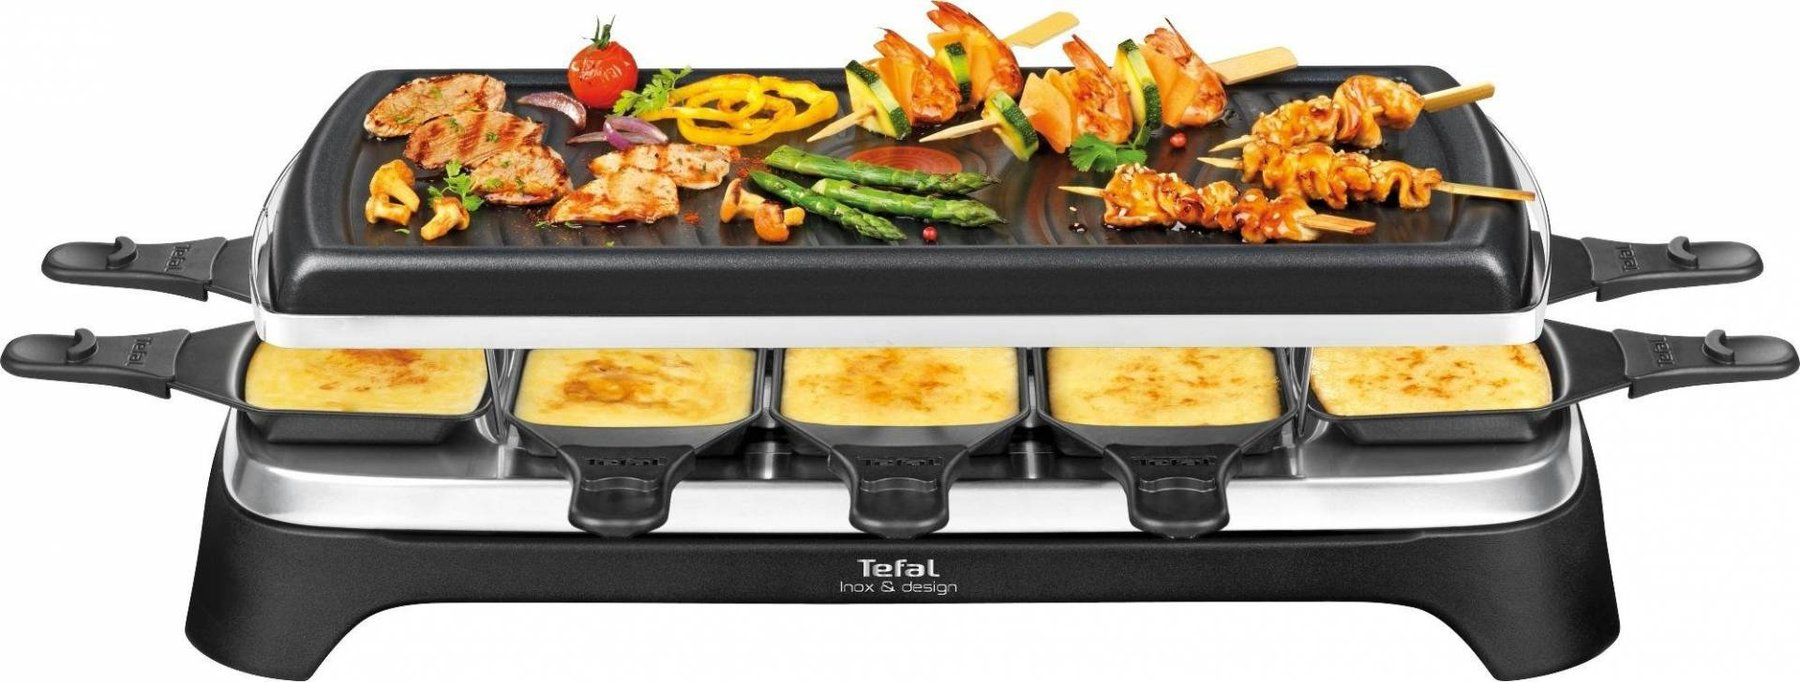 tefal raclette grill f r 10 personen. Black Bedroom Furniture Sets. Home Design Ideas